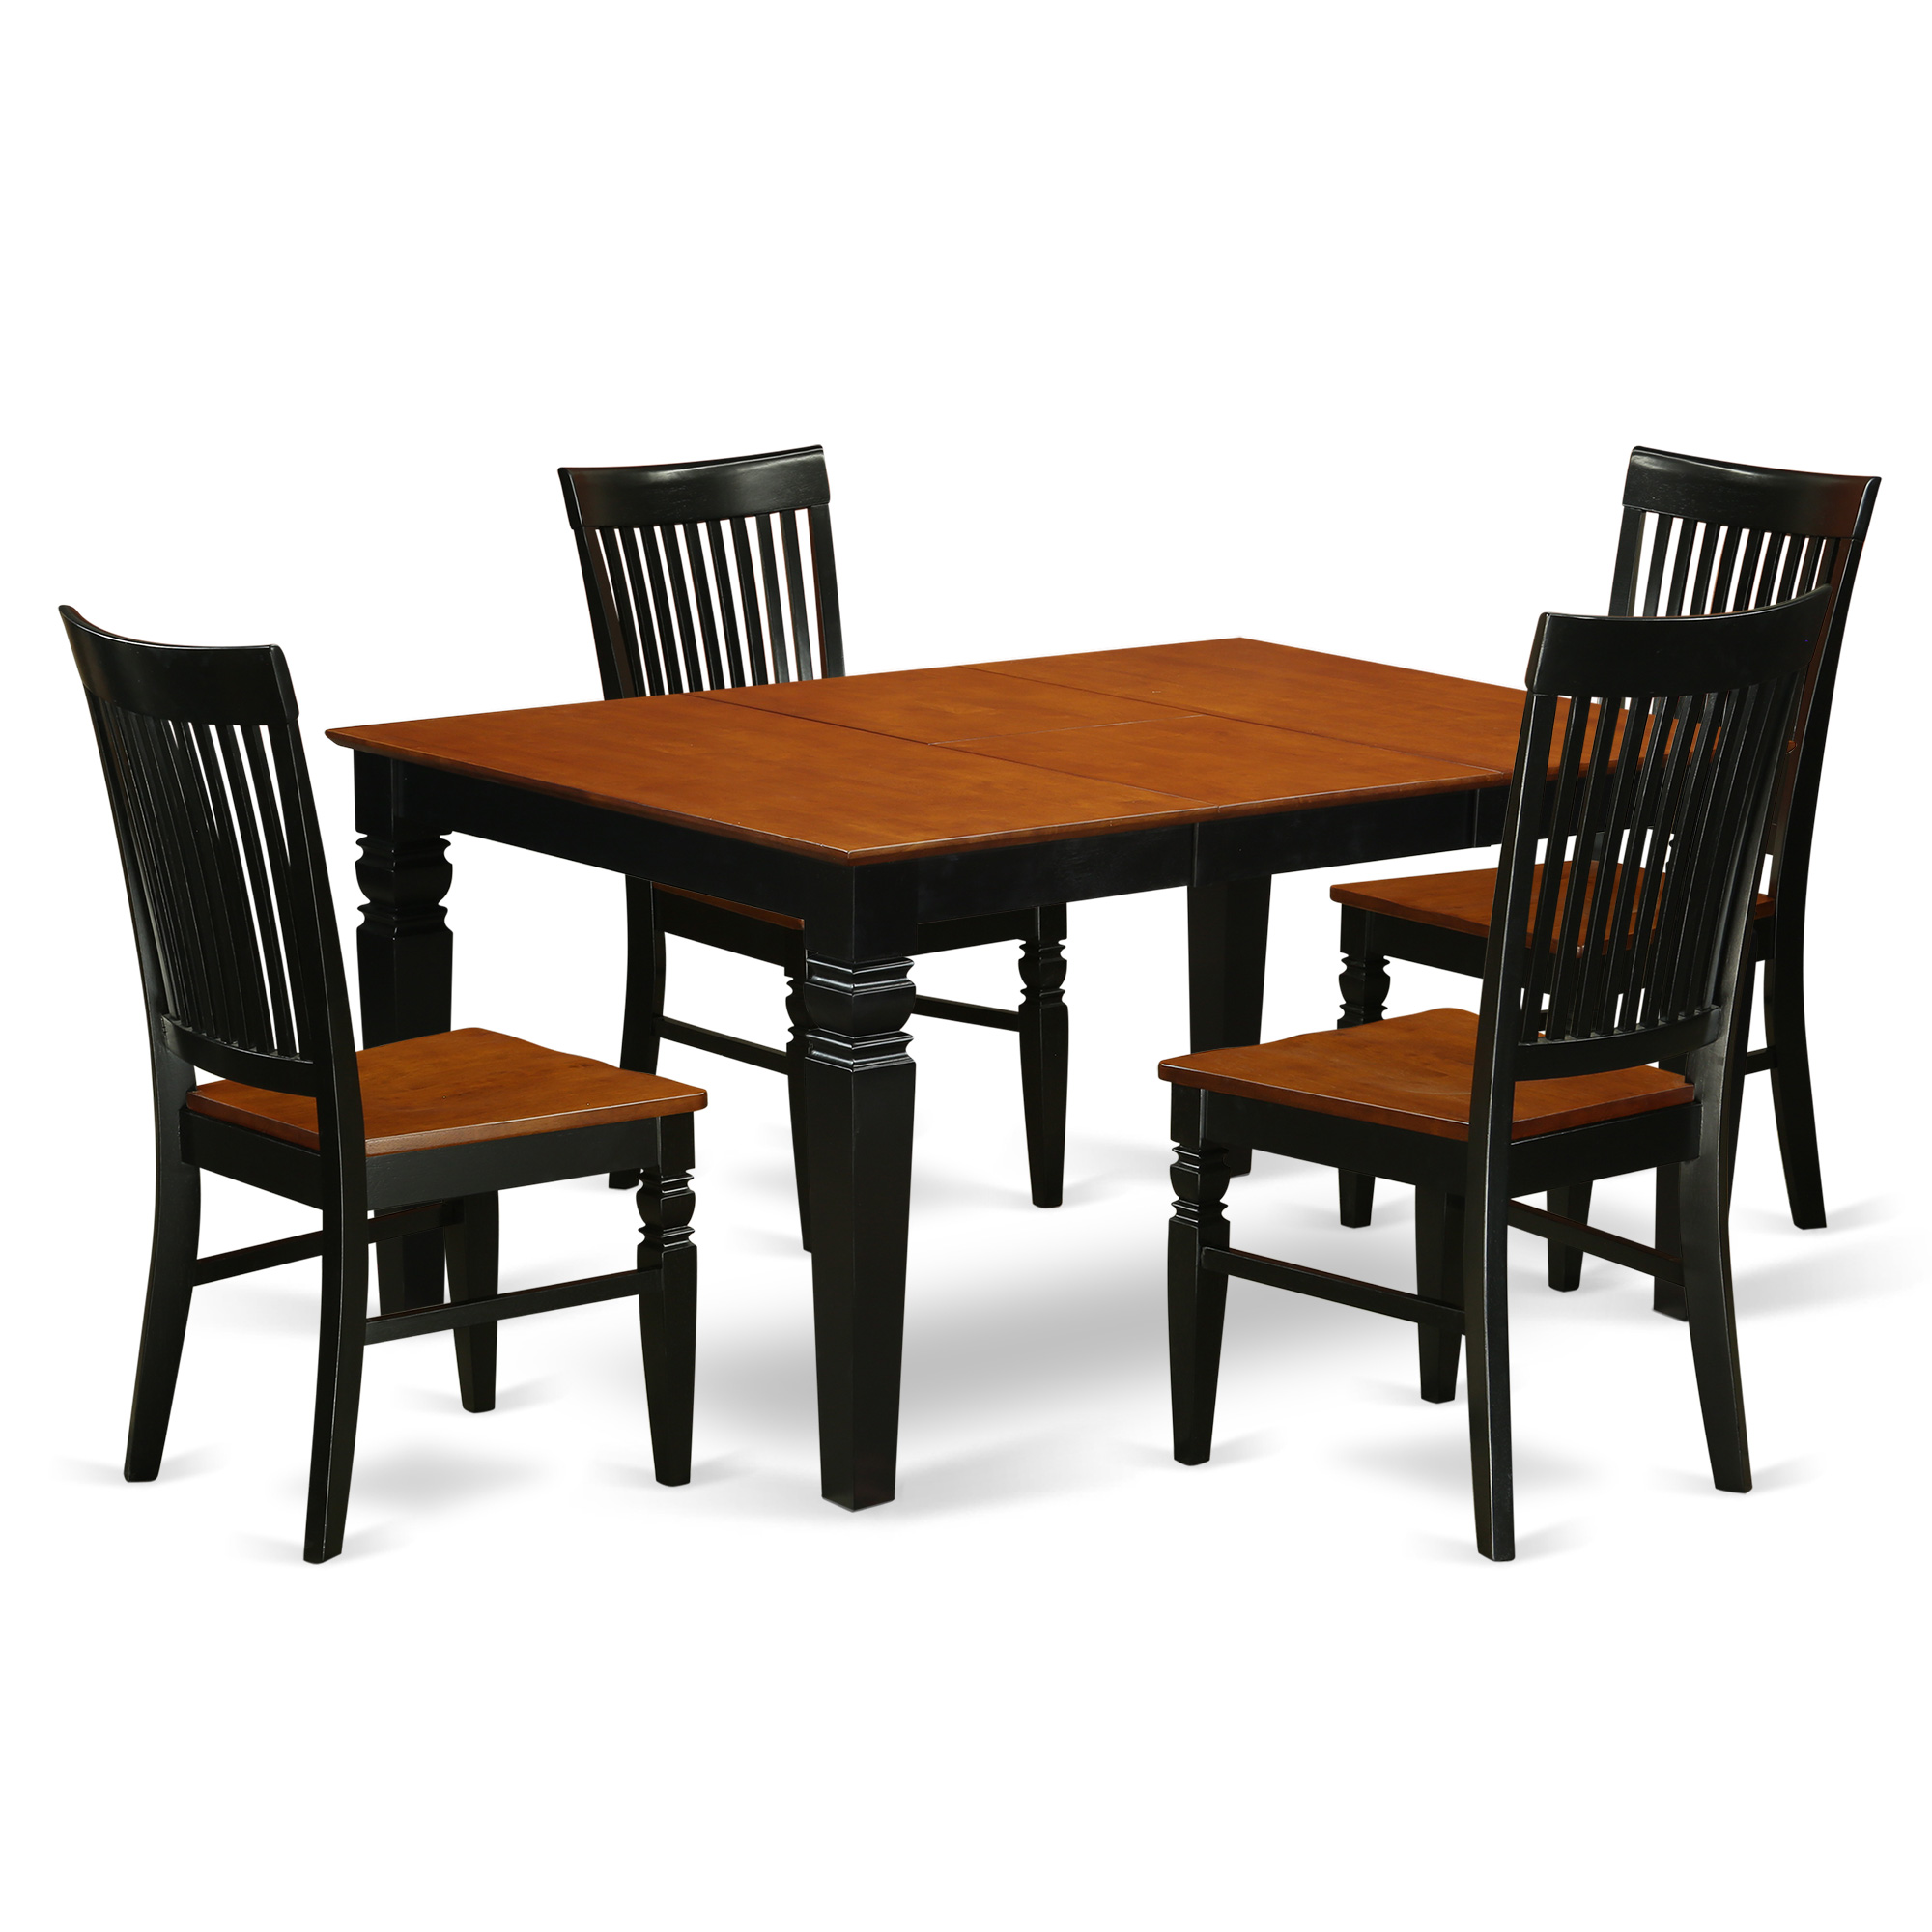 East West Furniture WEST5-BCH-W 5 Pc set with a Rectangle Table and 4 Wood  Seat Dinette Chairs in Black and Cherry, Wood Seat, Black & Cherry, ...